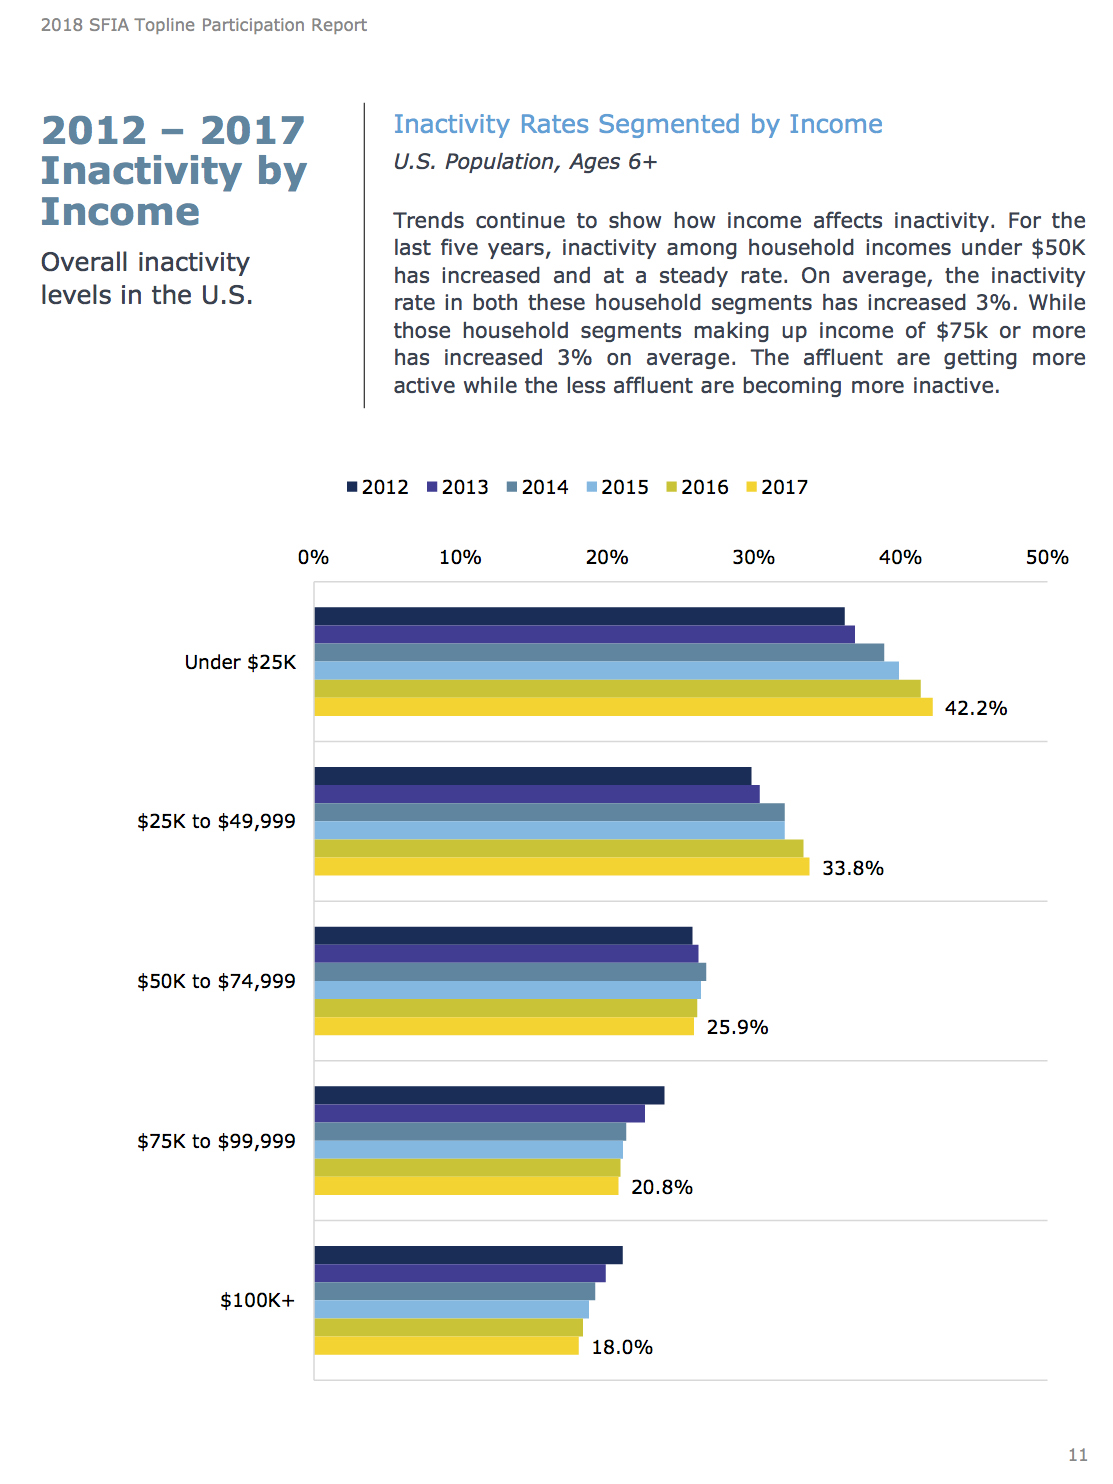 Chart of inactivity rates by income